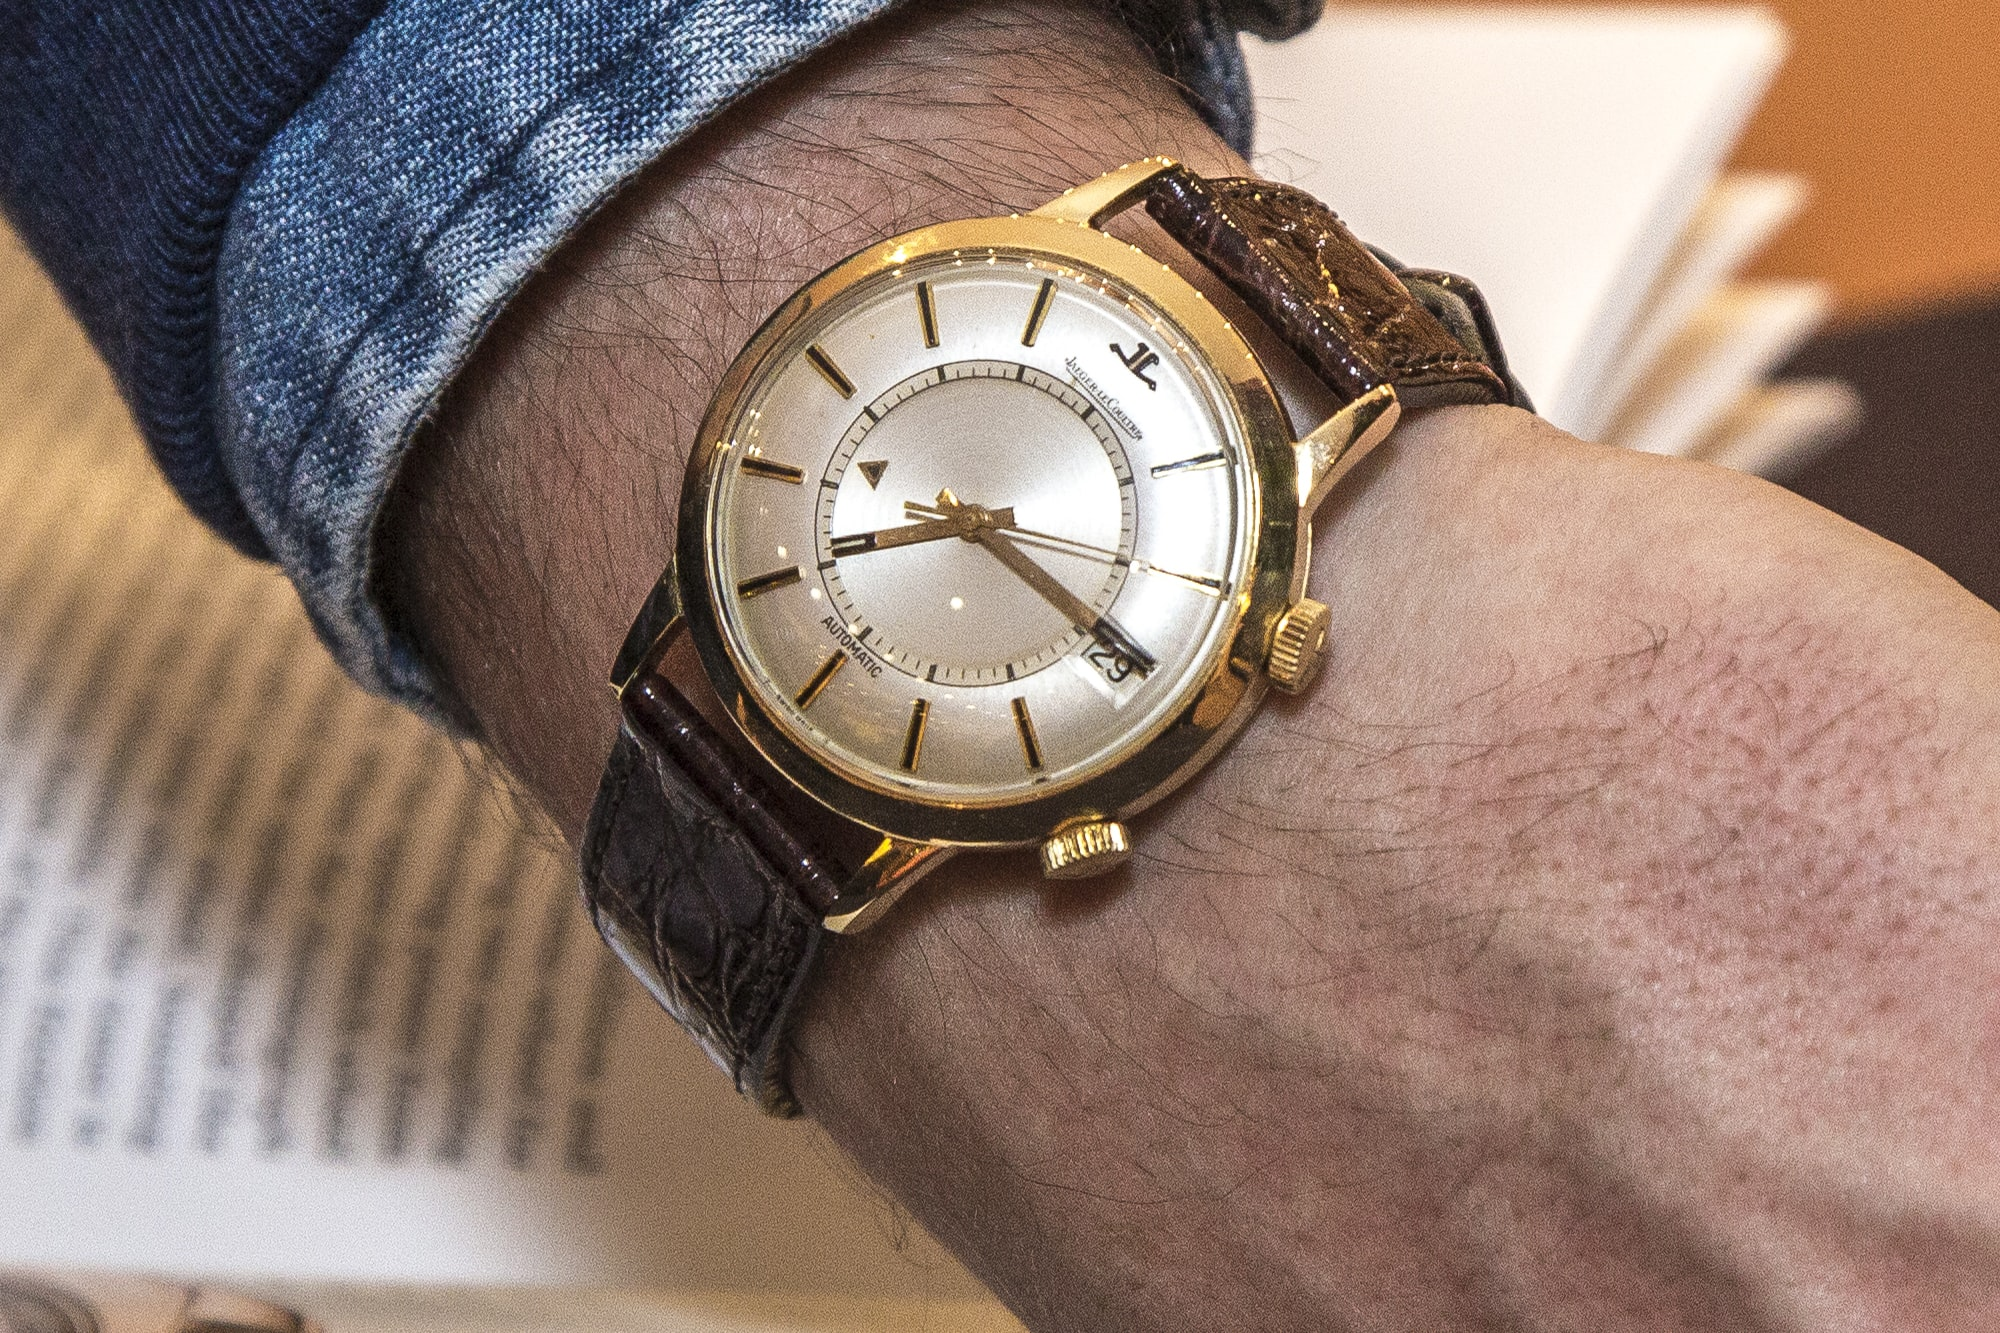 Photo Report: HODINKEE Hosts A Collector Get-Together At The Wempe Boutique In London Photo Report: HODINKEE Hosts A Collector Get-Together At The Wempe Boutique In London Memovox